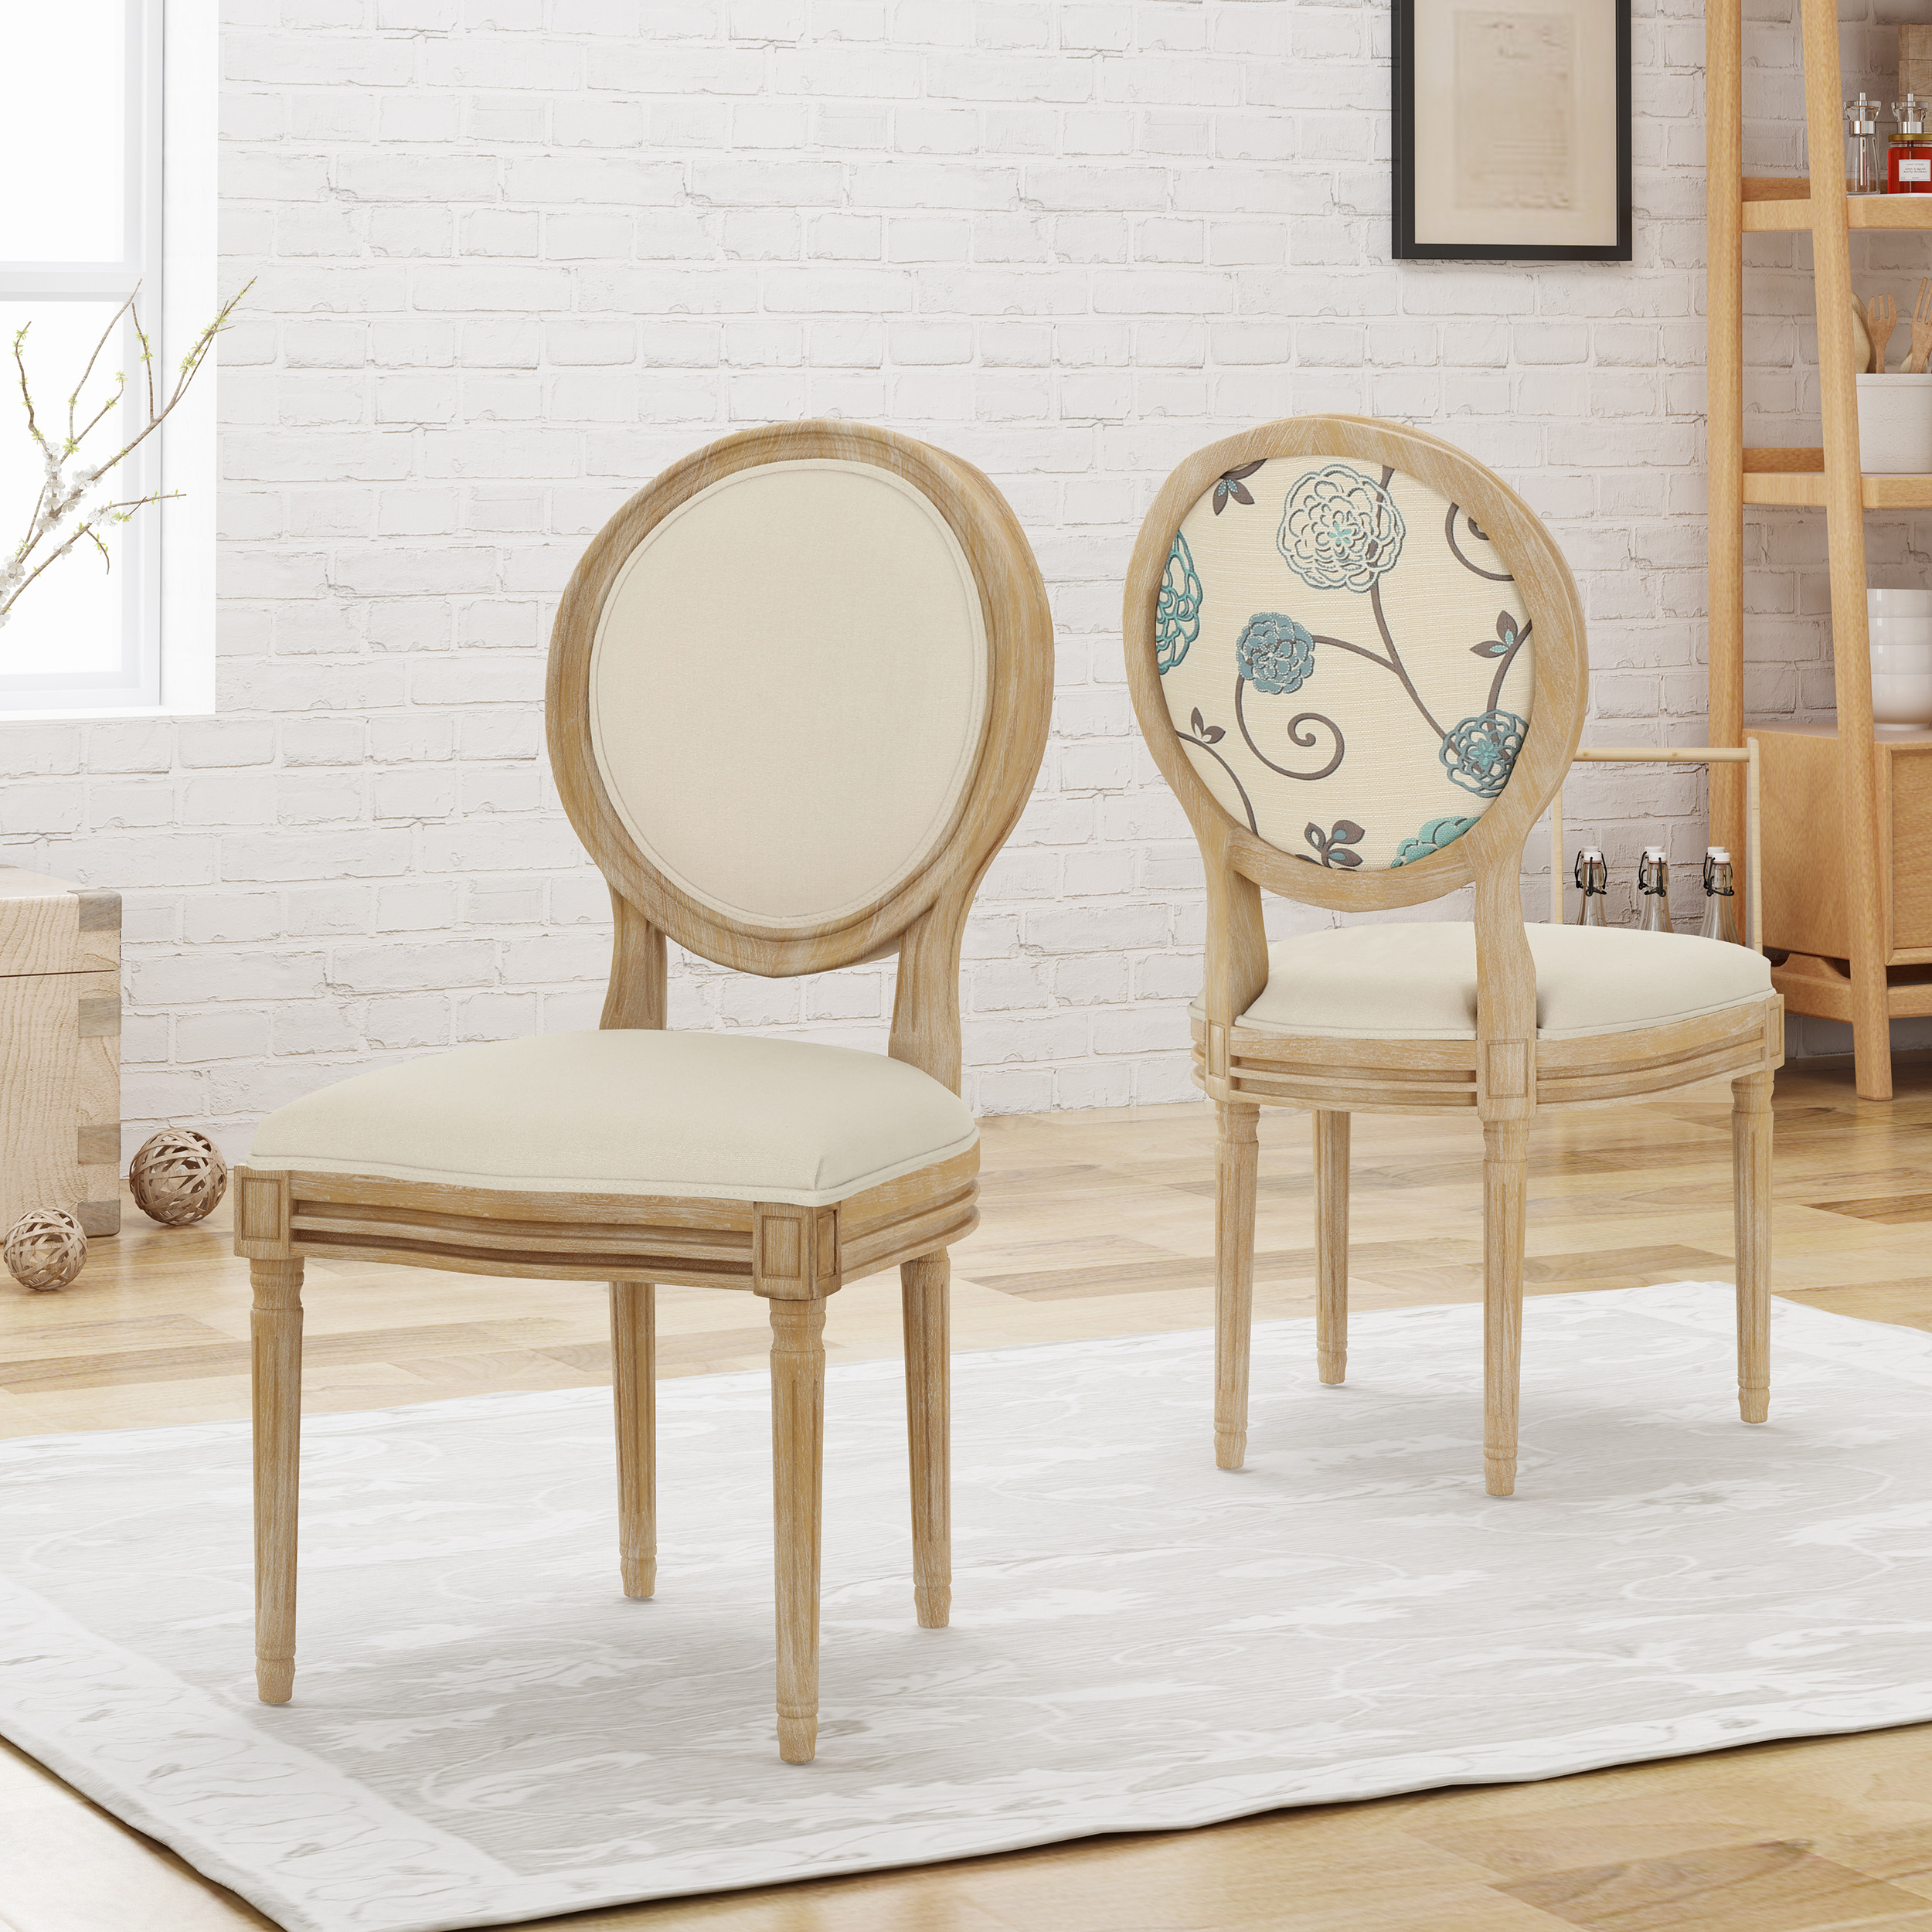 Noble House Nicole Fabric Upholstered Farmhouse Dining Chairs Set Of 2 Beige White Blue Walmart Com Walmart Com